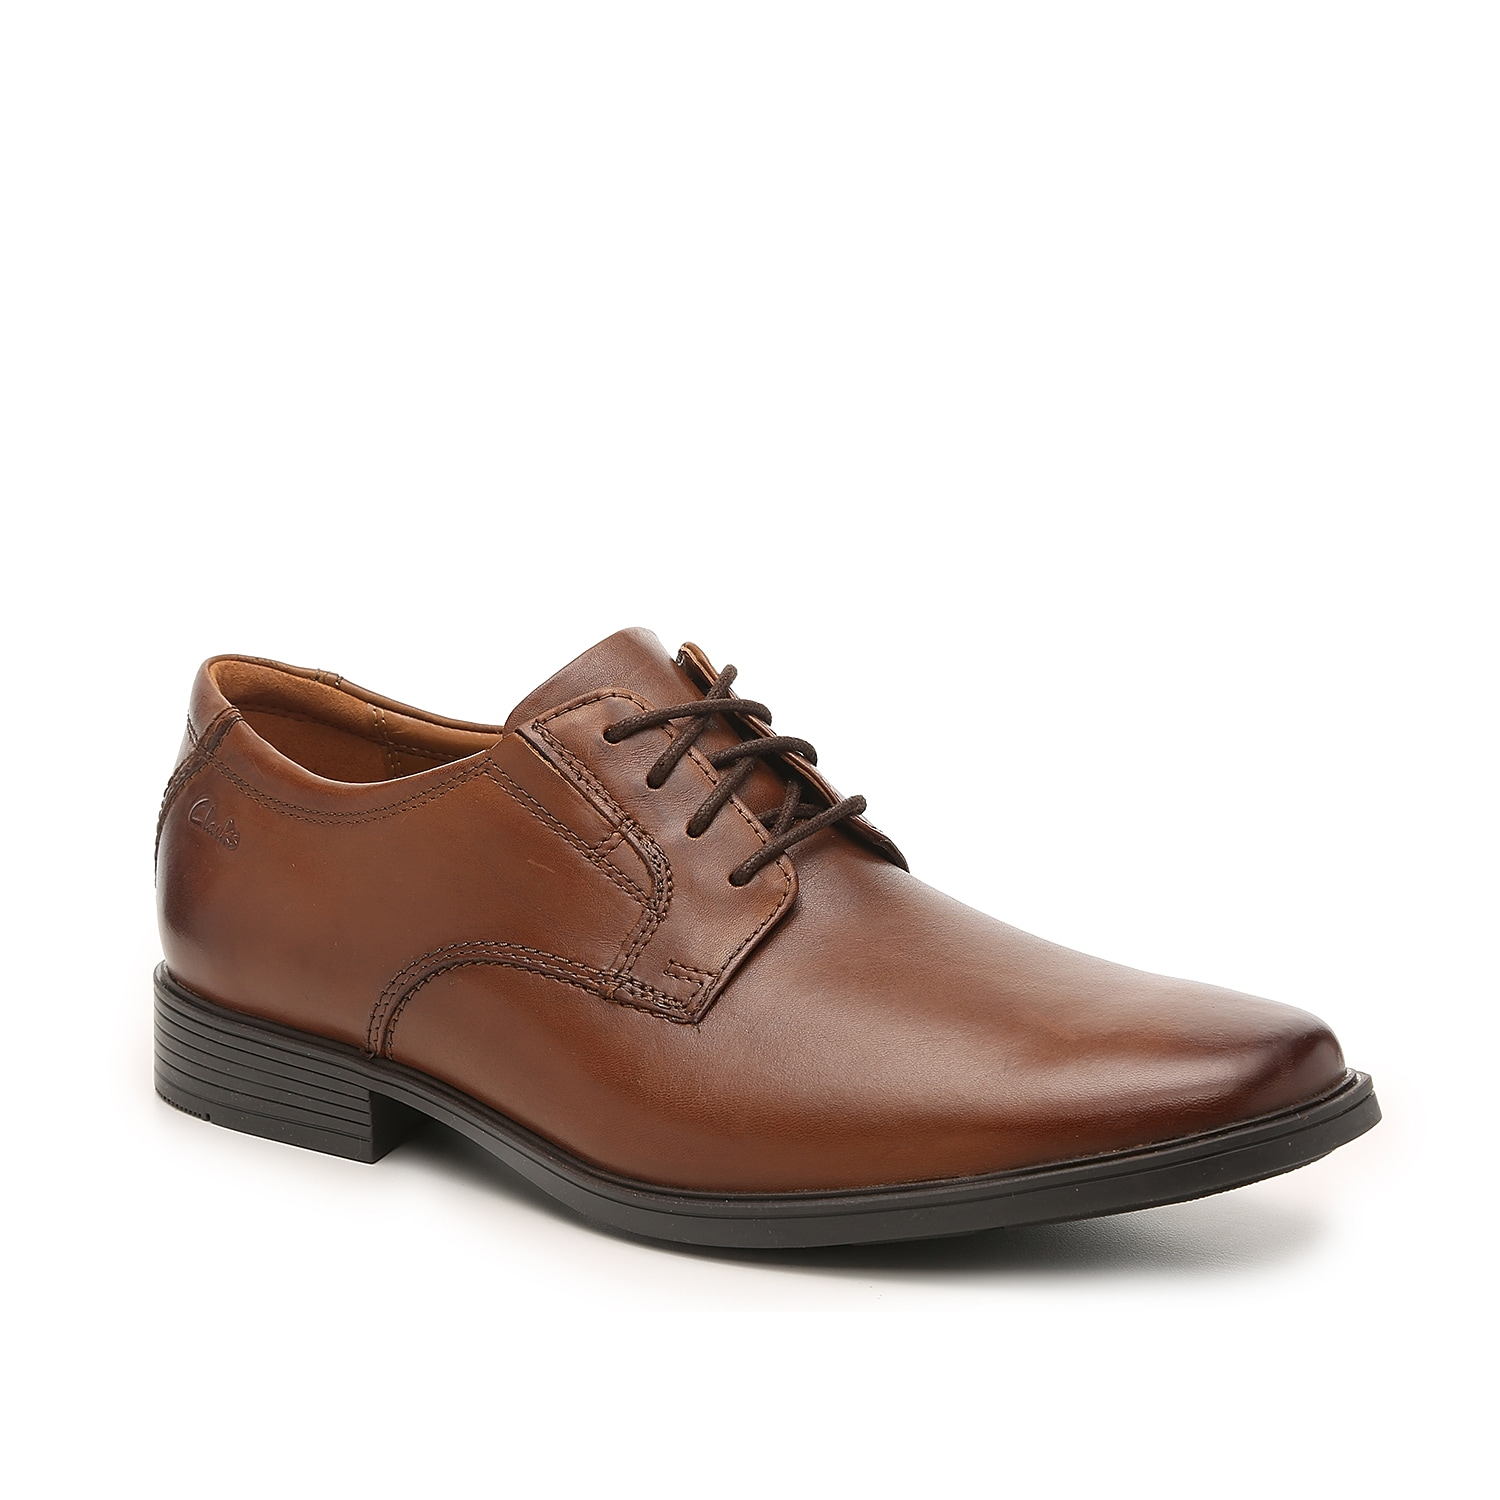 The lace-up Tilden oxford from Clarks will be perfect for dressing up or down. The leather upper and classic look will pair with anything from jeans to chinos!